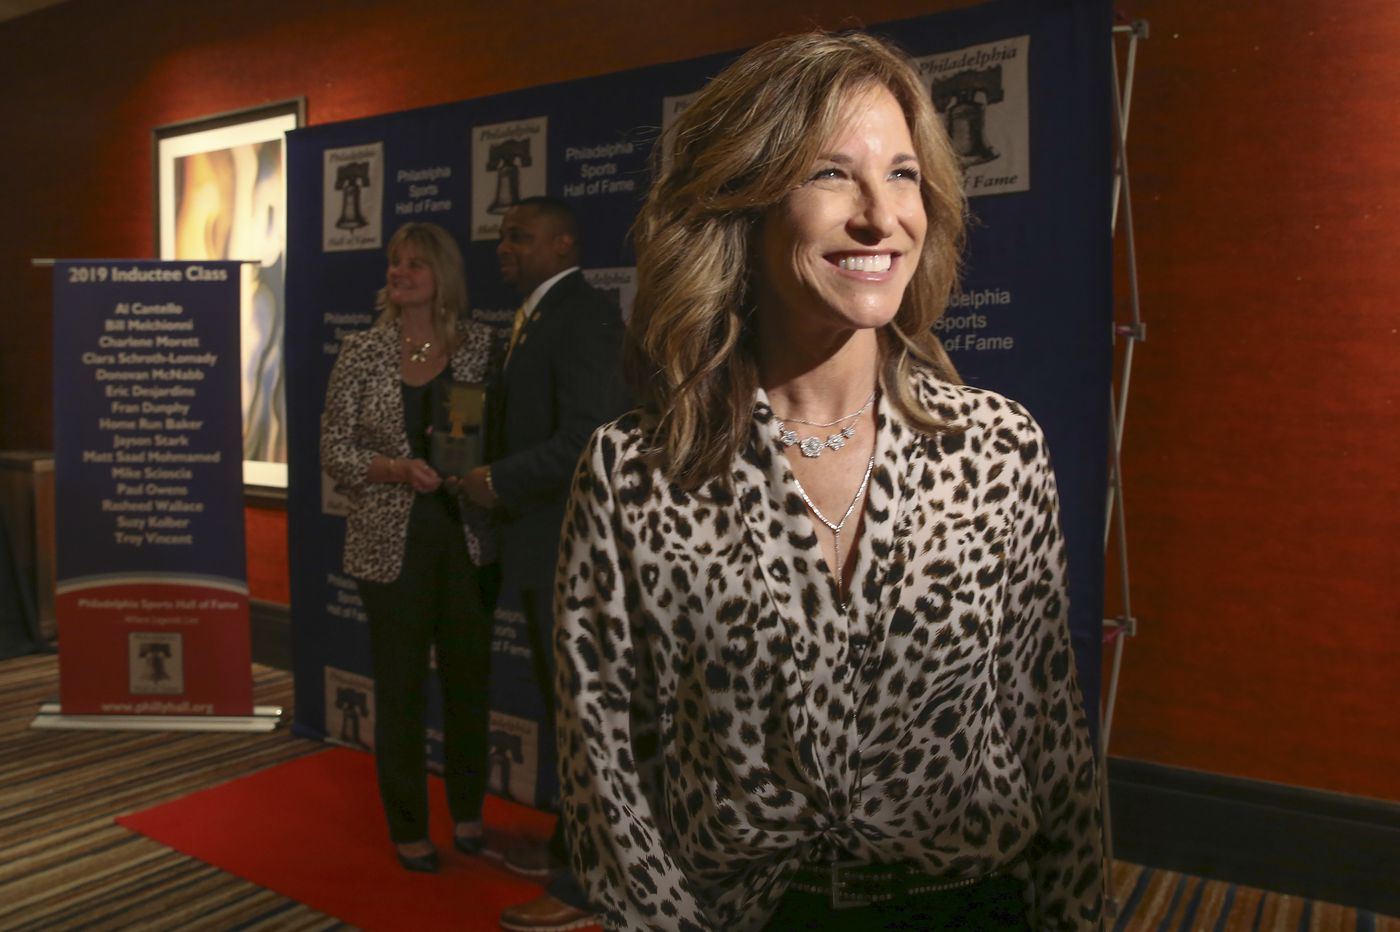 Suzy Kolber, with a legacy of paving the way for women in sports broadcasting, enters the Philadelphia Sports Hall of Fame